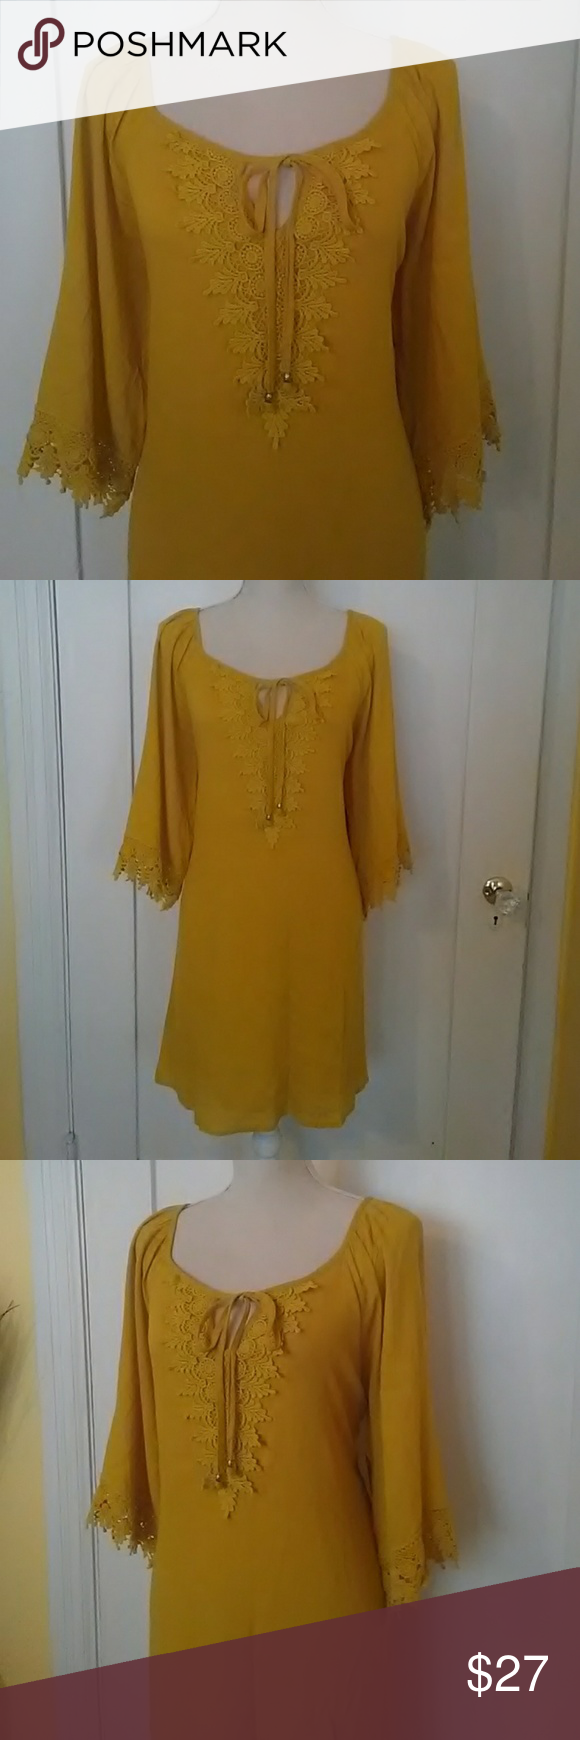 Naif petite XL dress NWT mustard yellow Naif Dresses Mini